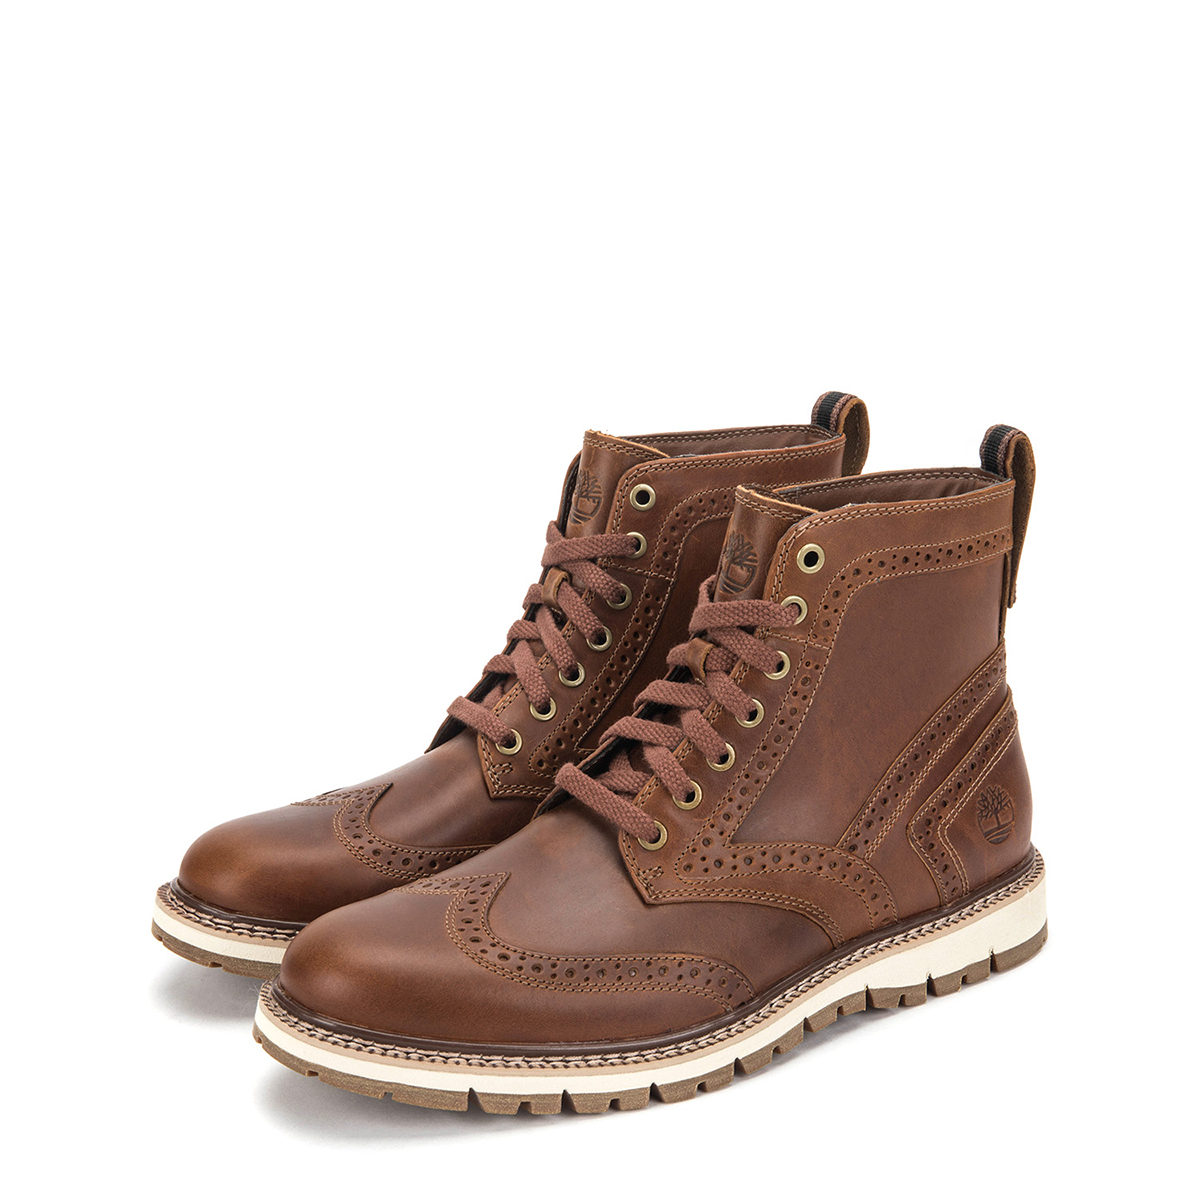 Timberland Men's Britton Hill Wingtip Boots TB0A1MH3919 Medium Brown by